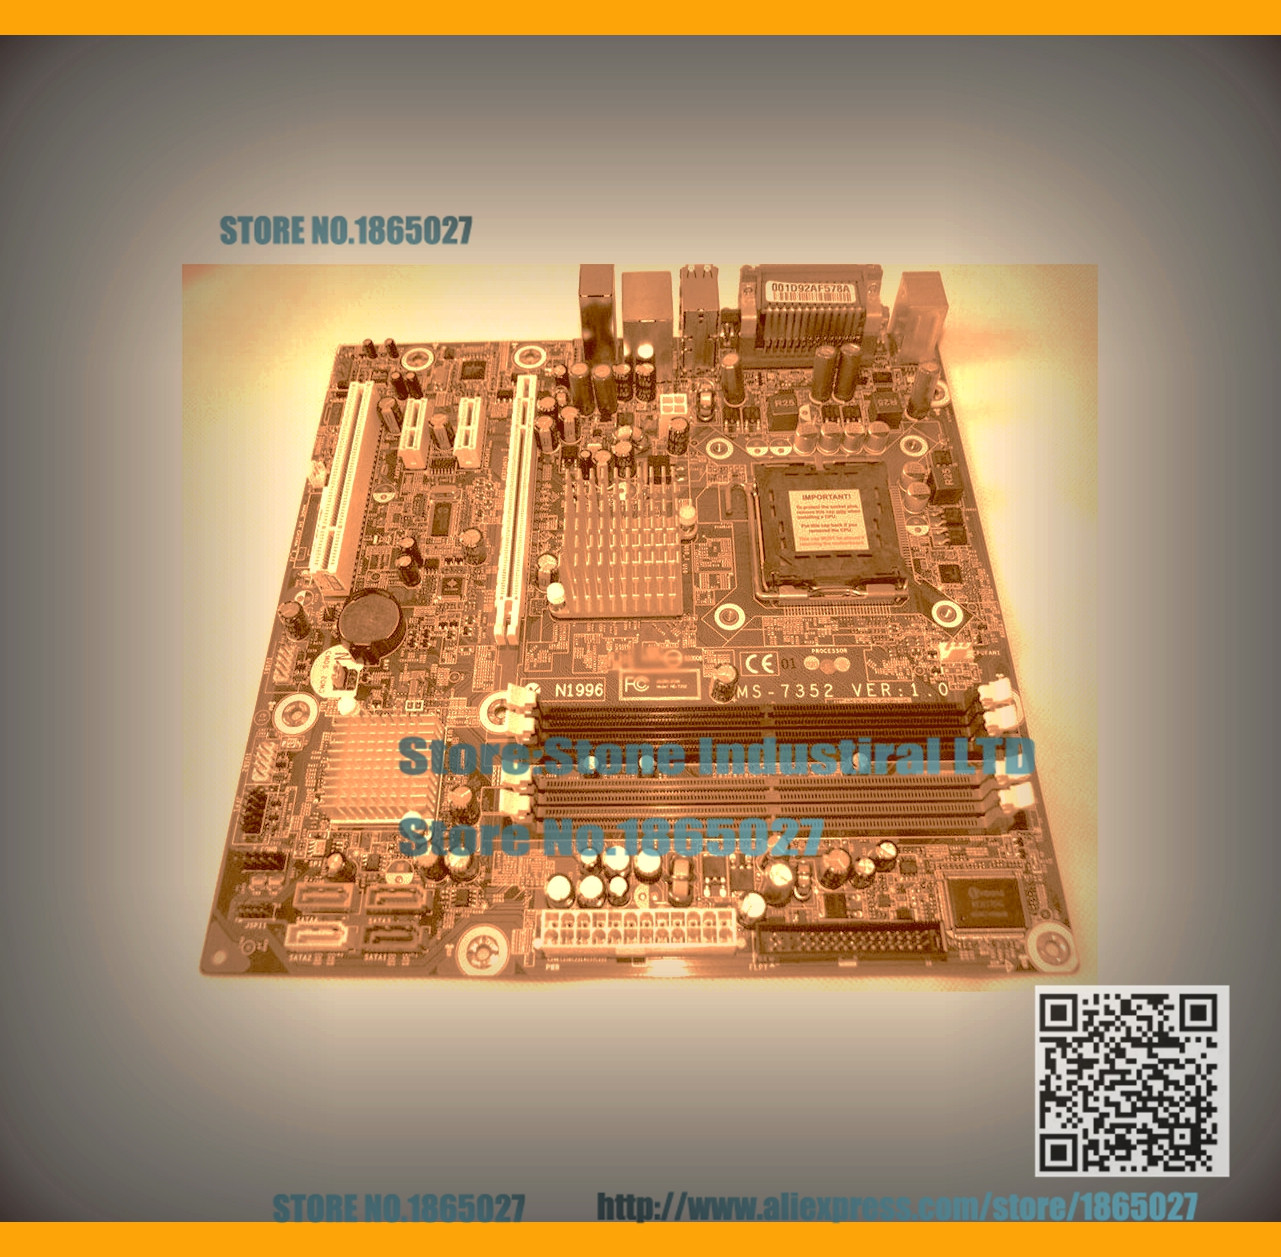 ФОТО dx7400 dx7408 MS-7352 G33 Desktop Motherboard 480909-001 447400-003 100% Tested Good Quality